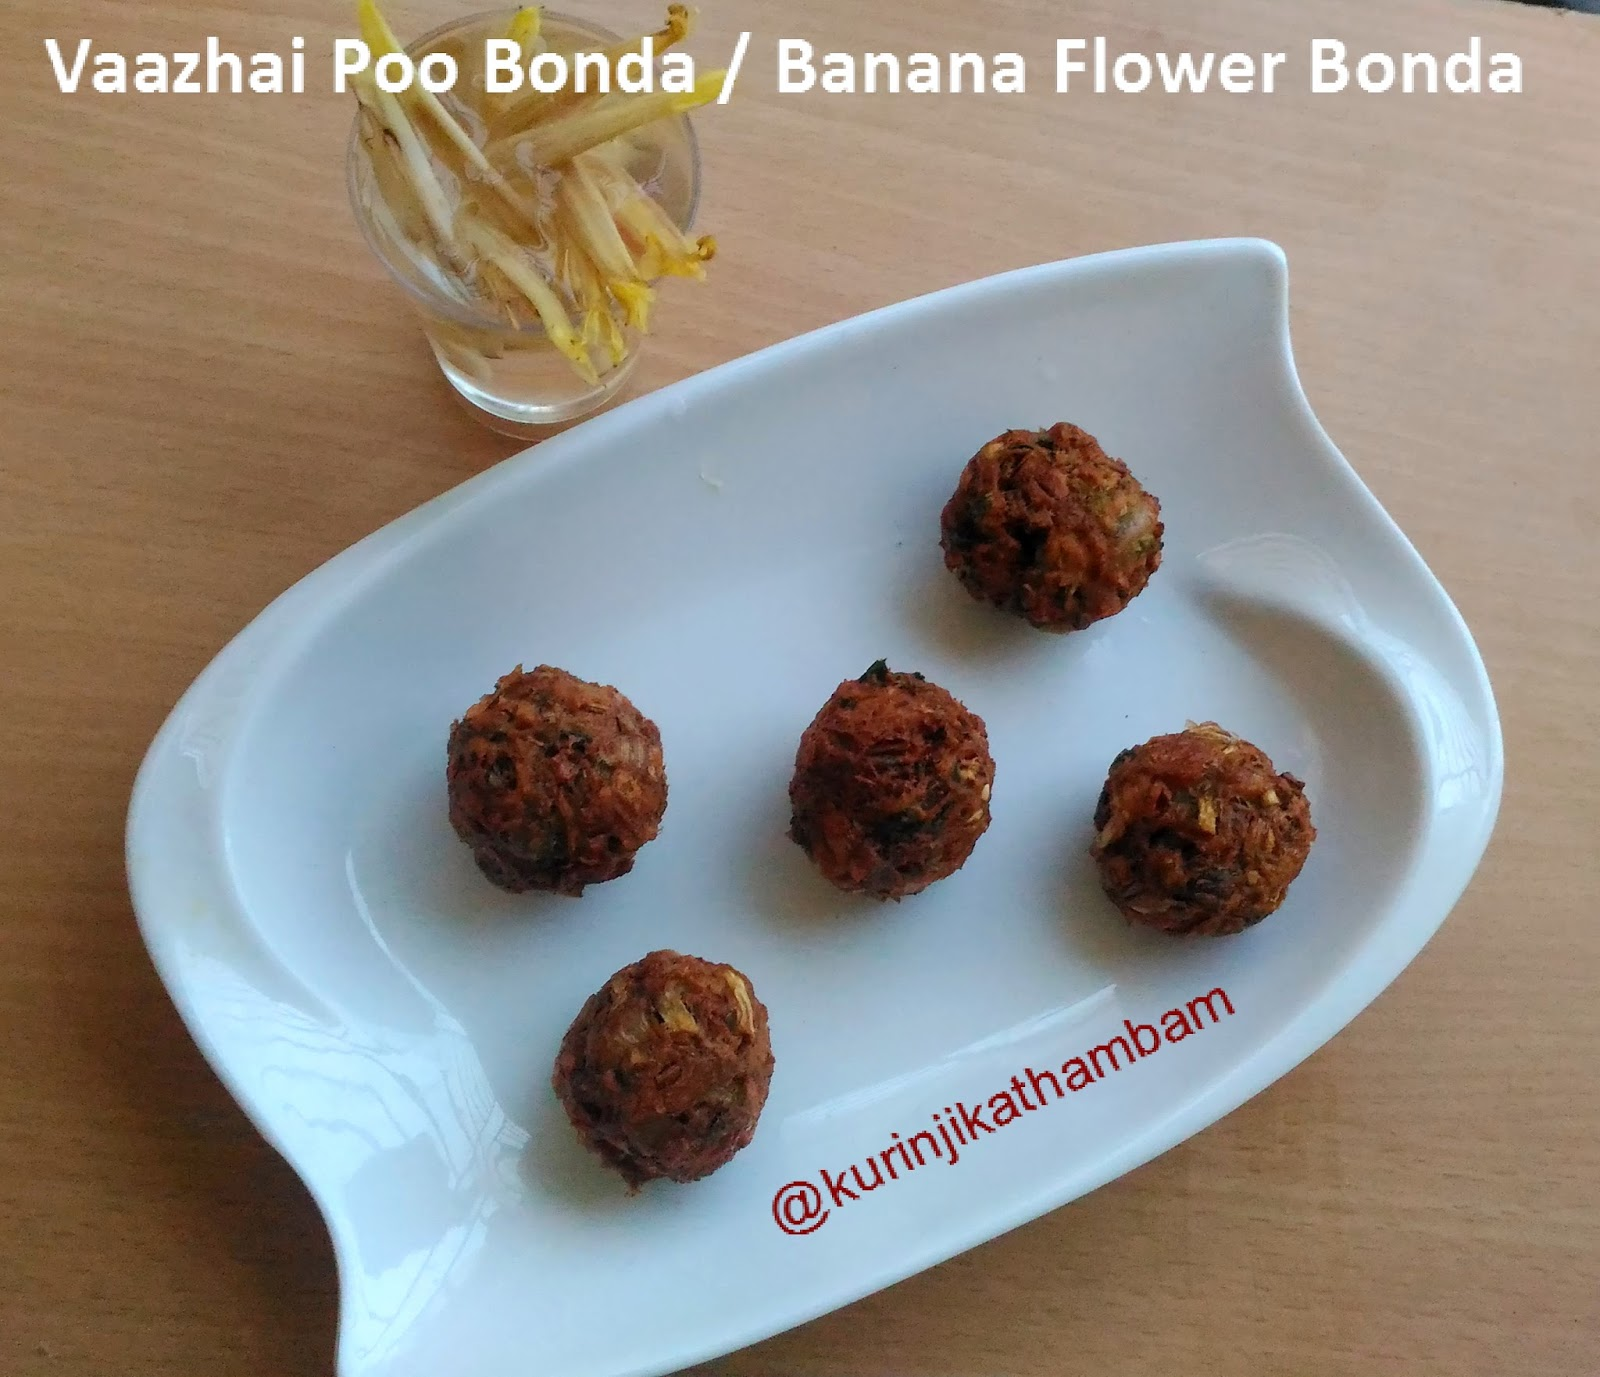 Banana Flower ( Vazhaipoo) Bonda Recipe | Vazhaipoo Recipes ...